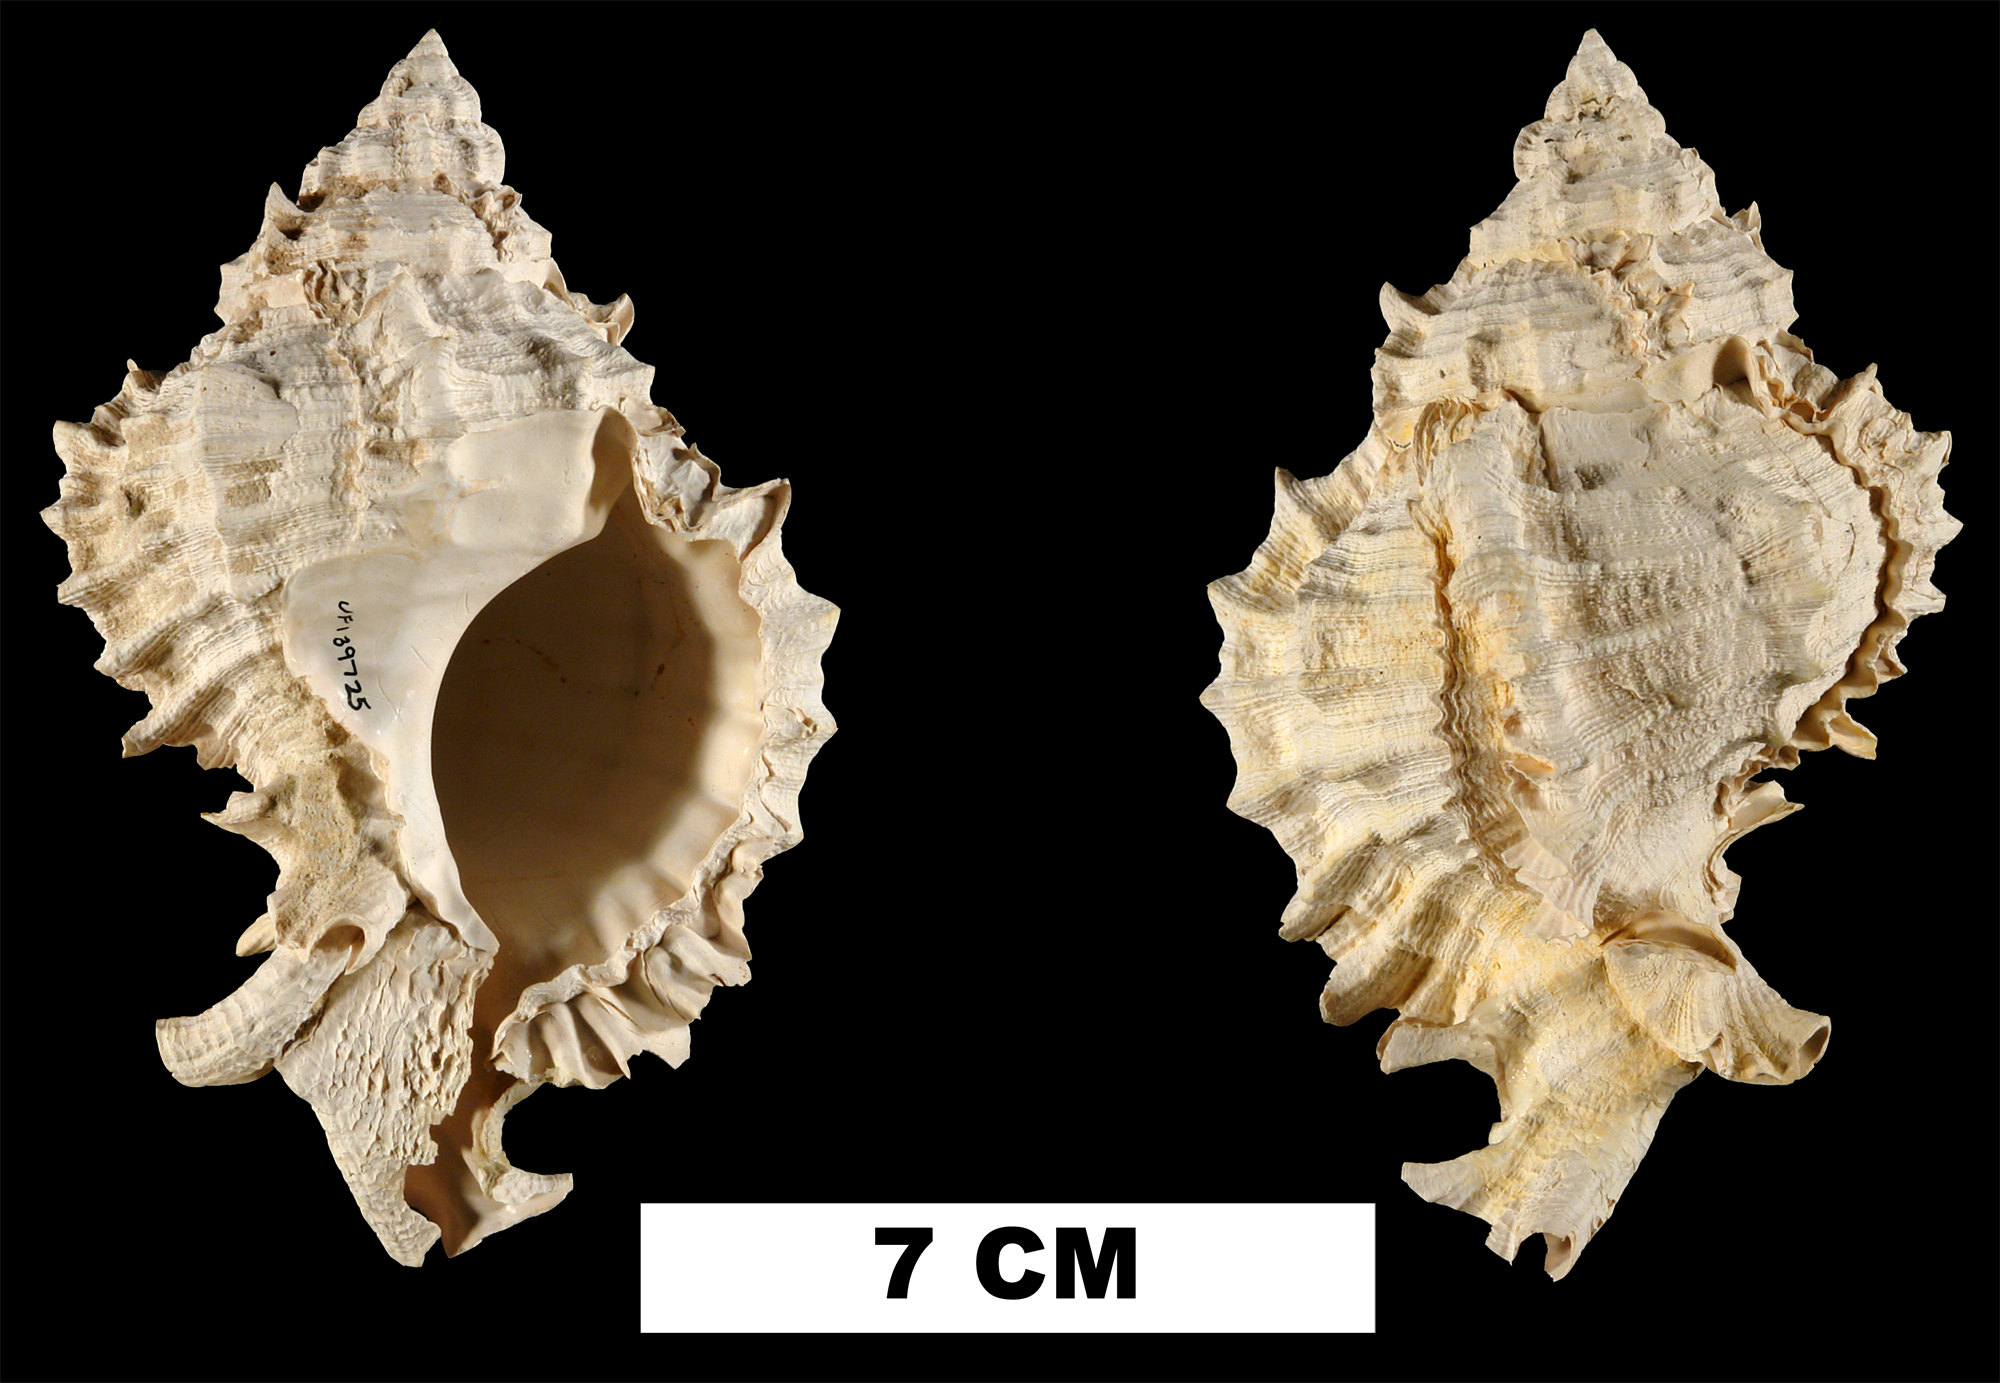 <i>Phyllonotus pomum</i> from the Middle Pleistocene Bermont Fm. of Palm Beach County, Florida (UF 122922).